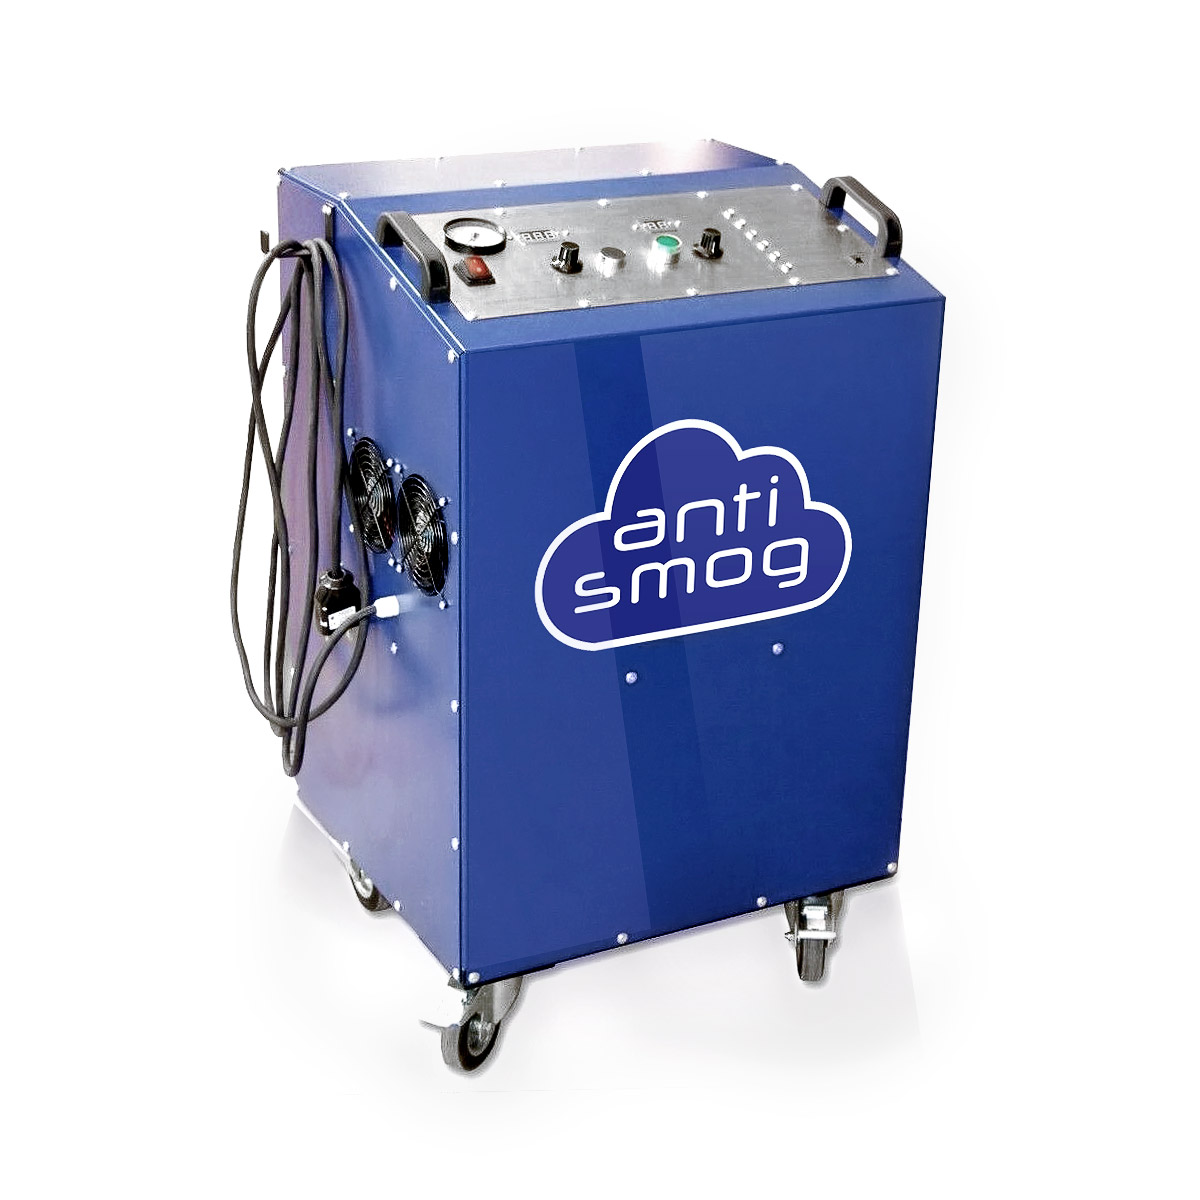 Antismog Carbon Cleaning Machine C-600.220 front view02